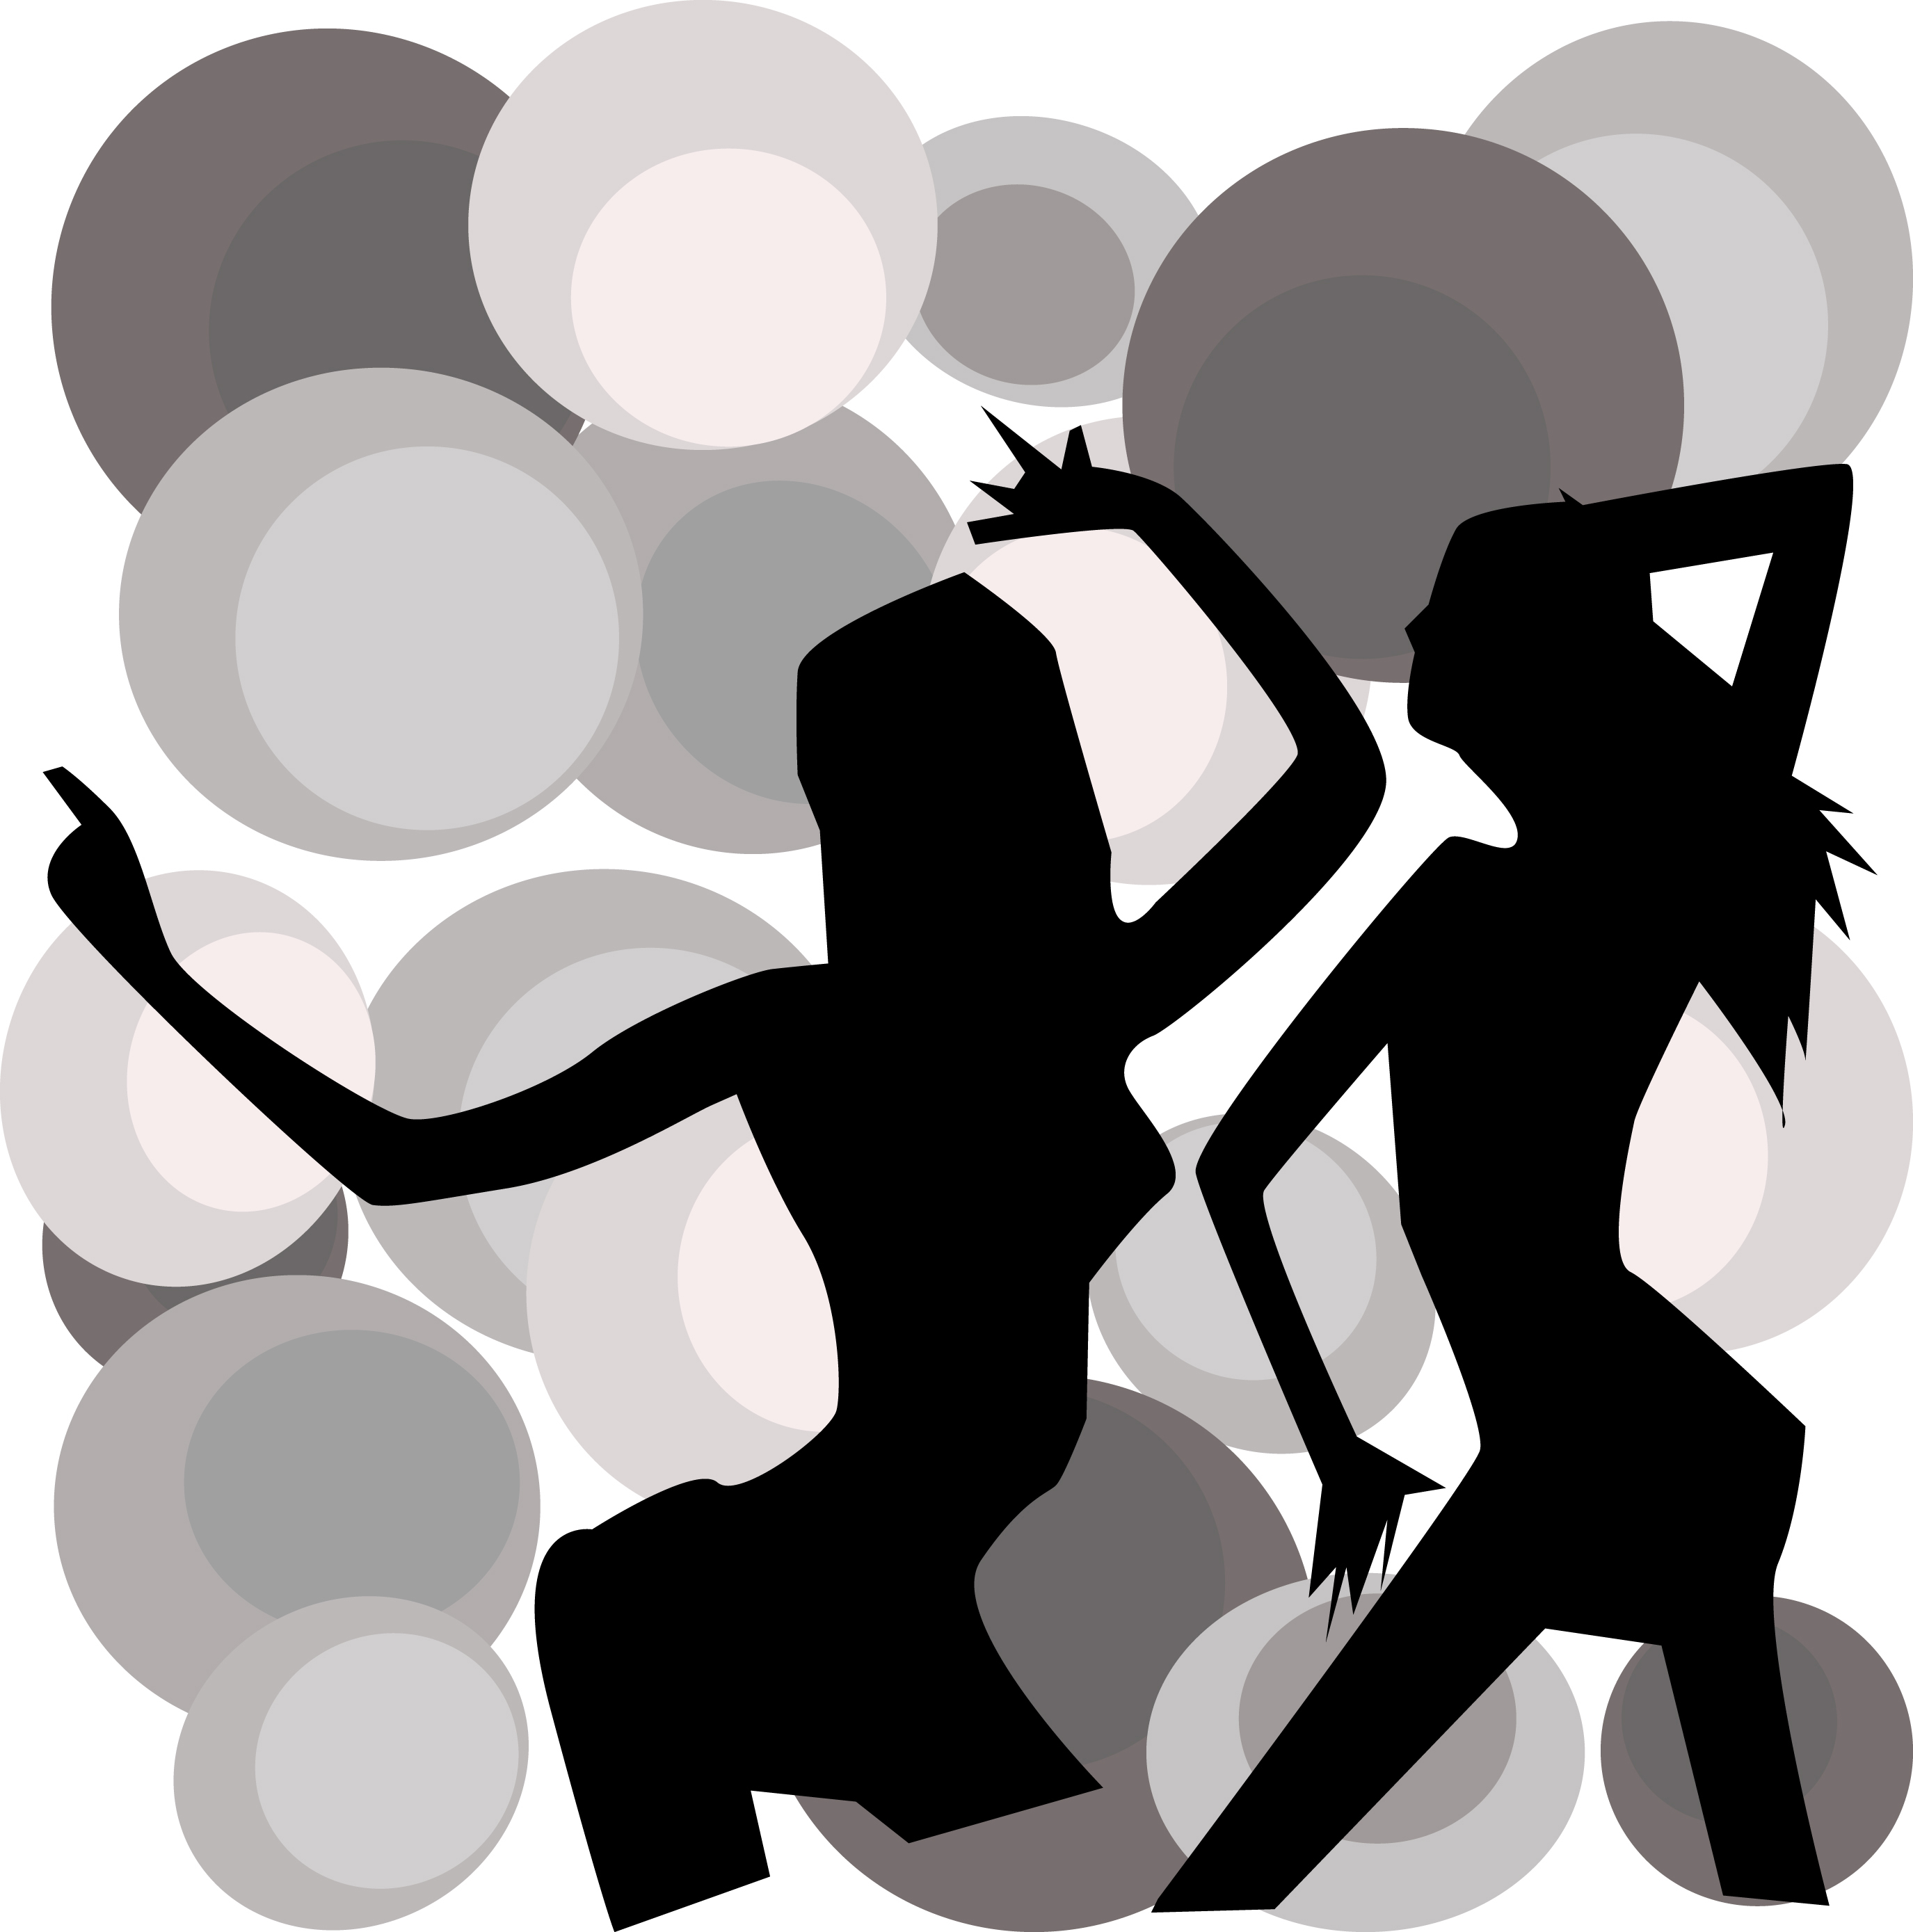 Adobe Illustrator work of dancing girls 1970 look